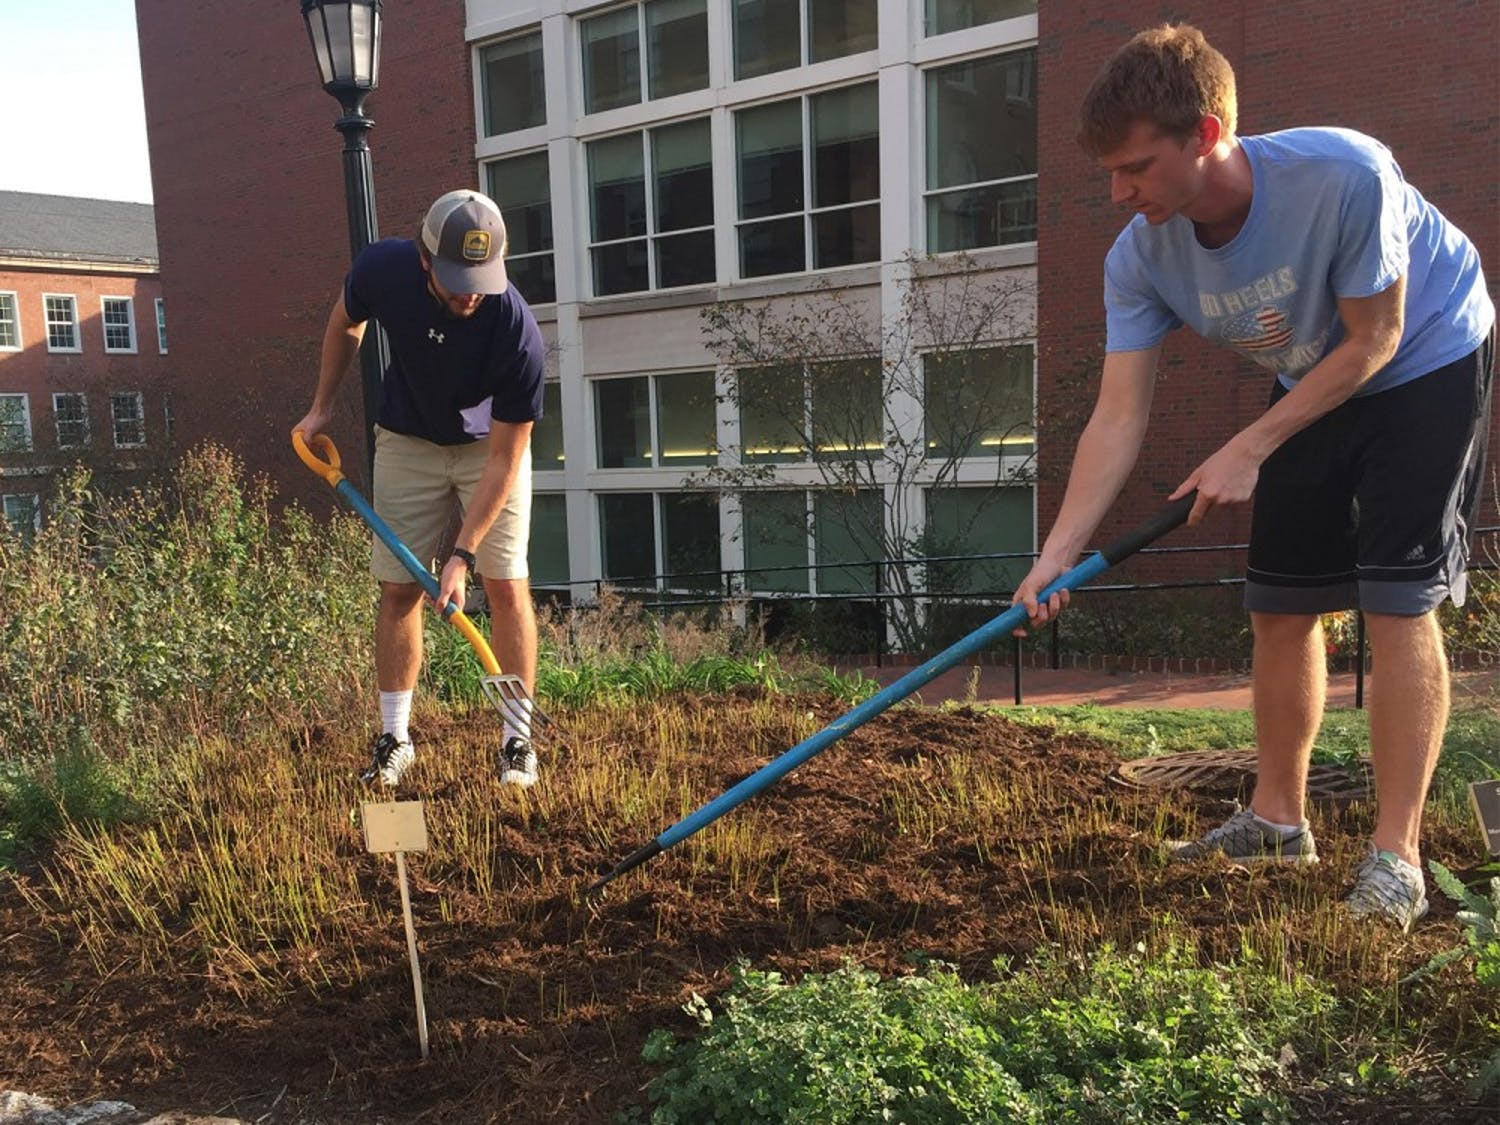 (From left)William Welbourne, a junior biology major and Danny Kelly, a senior history major, tend to a medicinal garden located near the Health Sciences library.